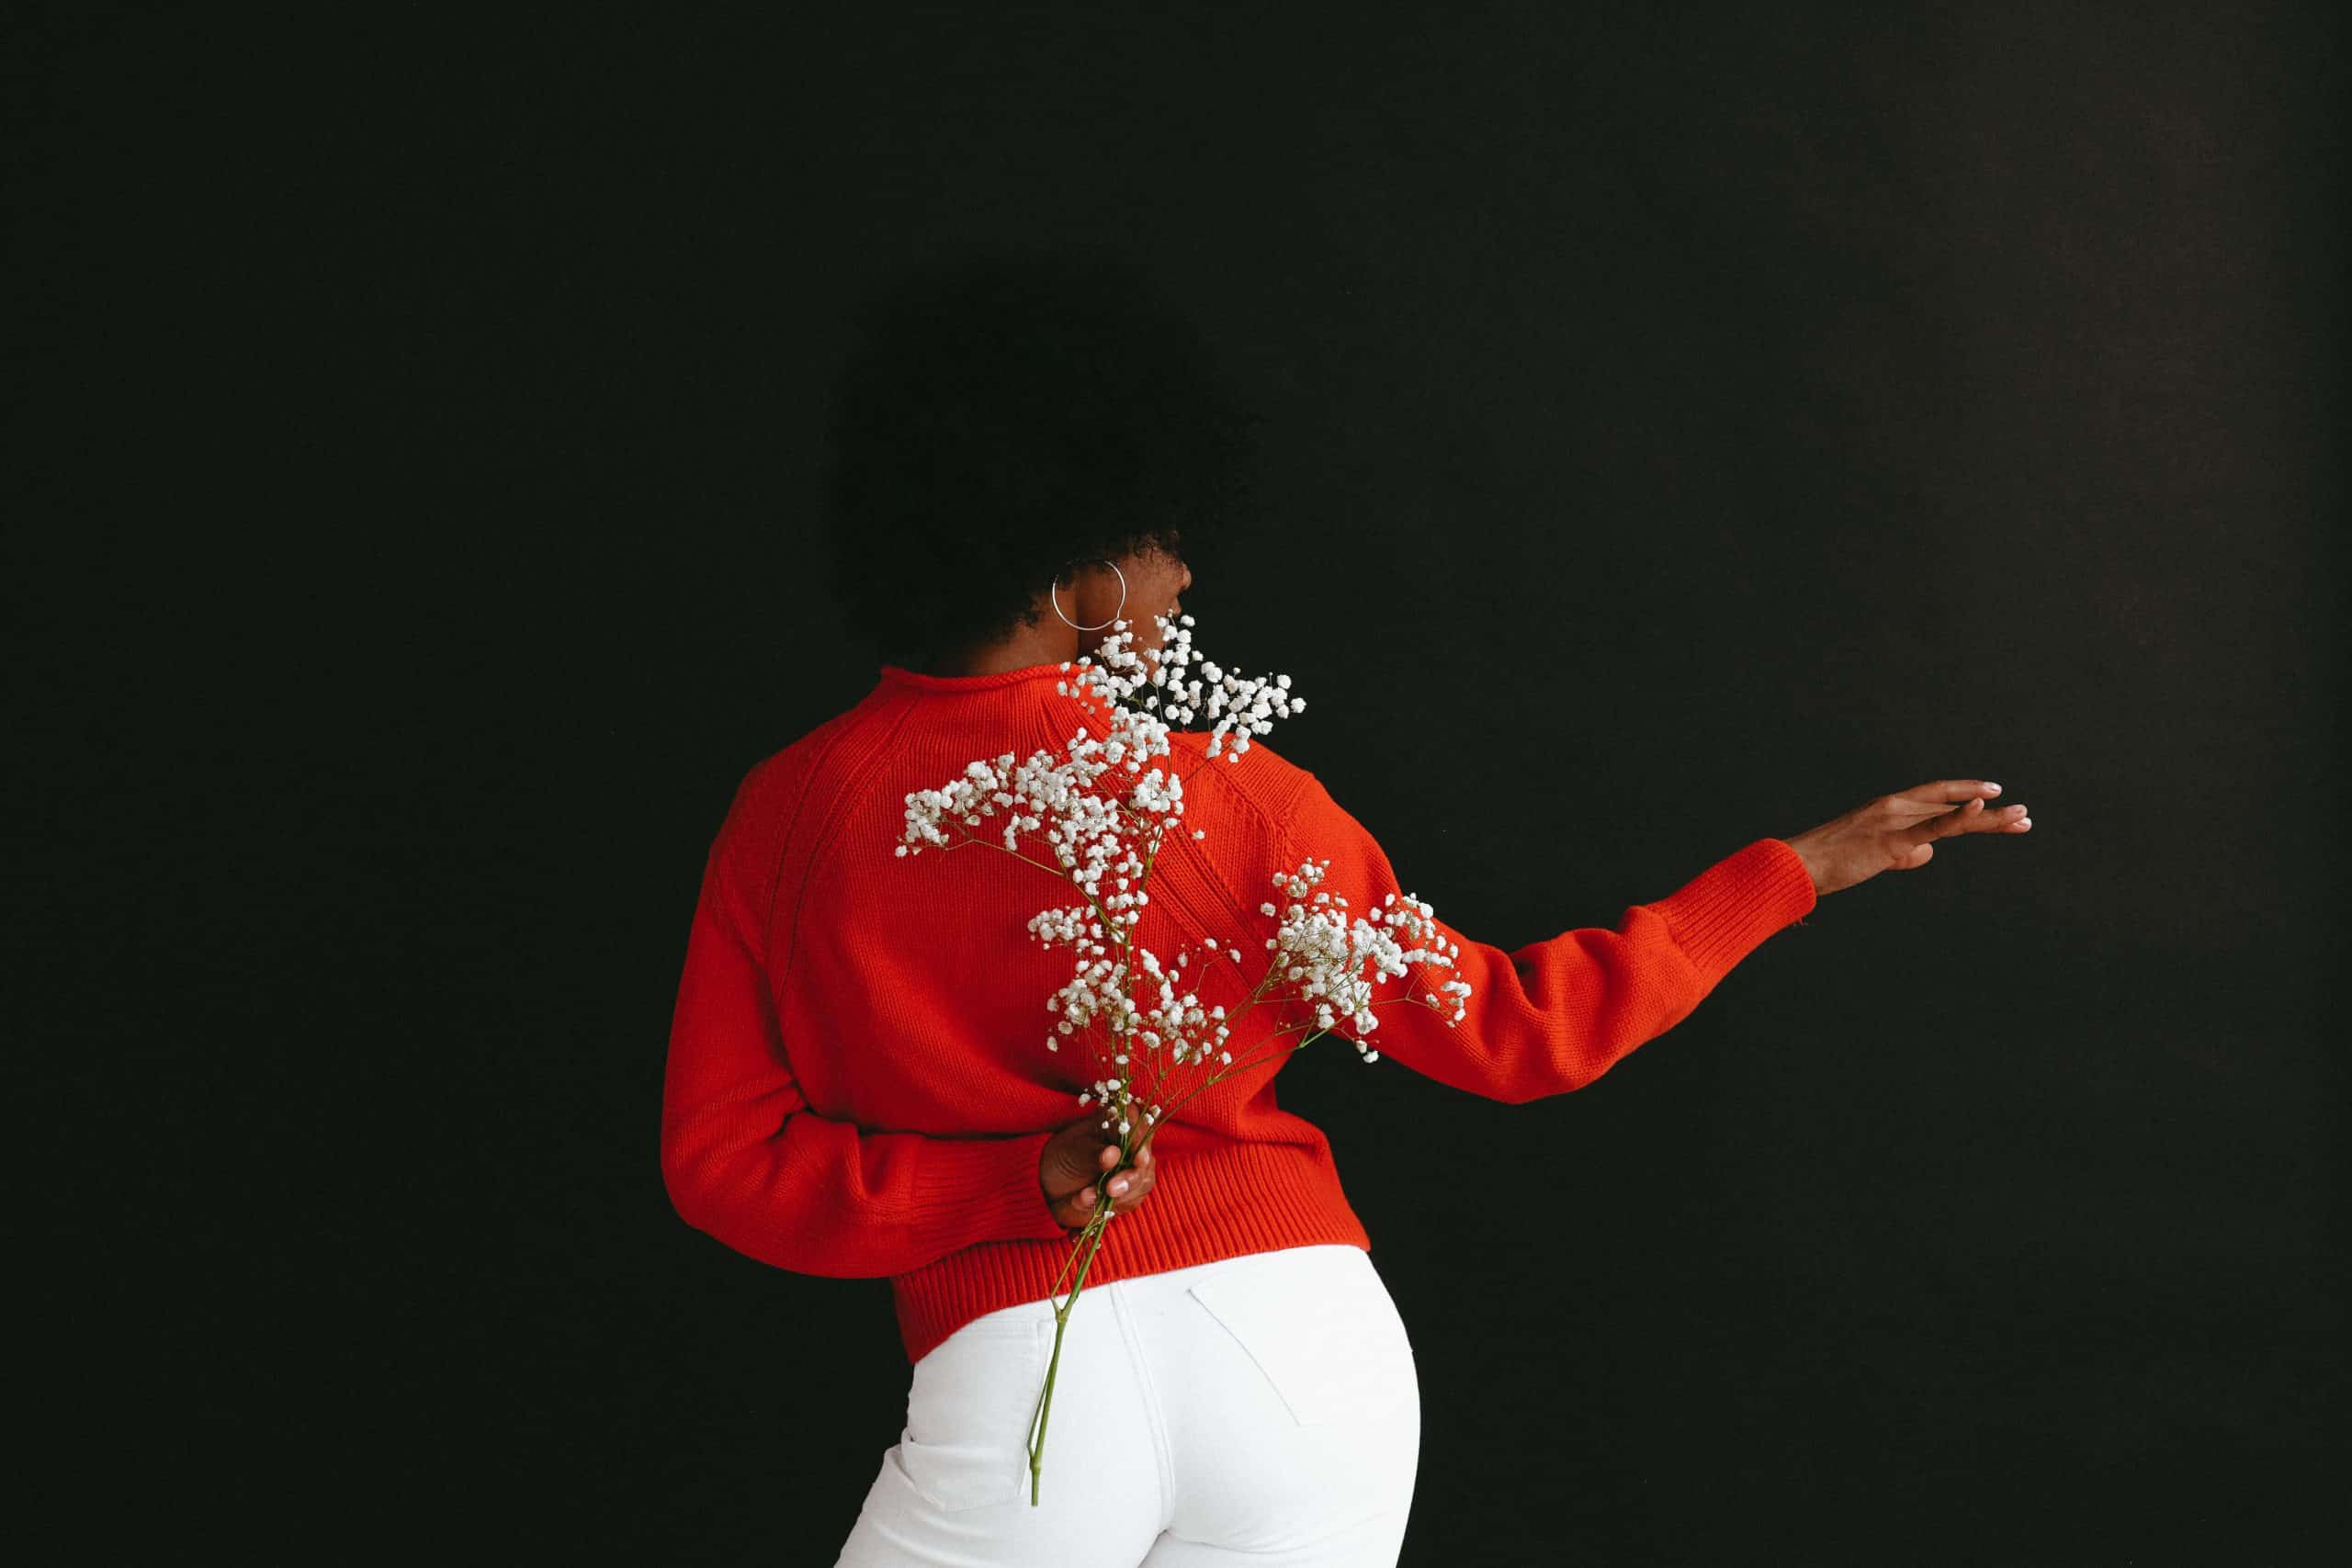 woman with back turned wearing red sweater, holding flowers behind her back and gesturing away with the other hand